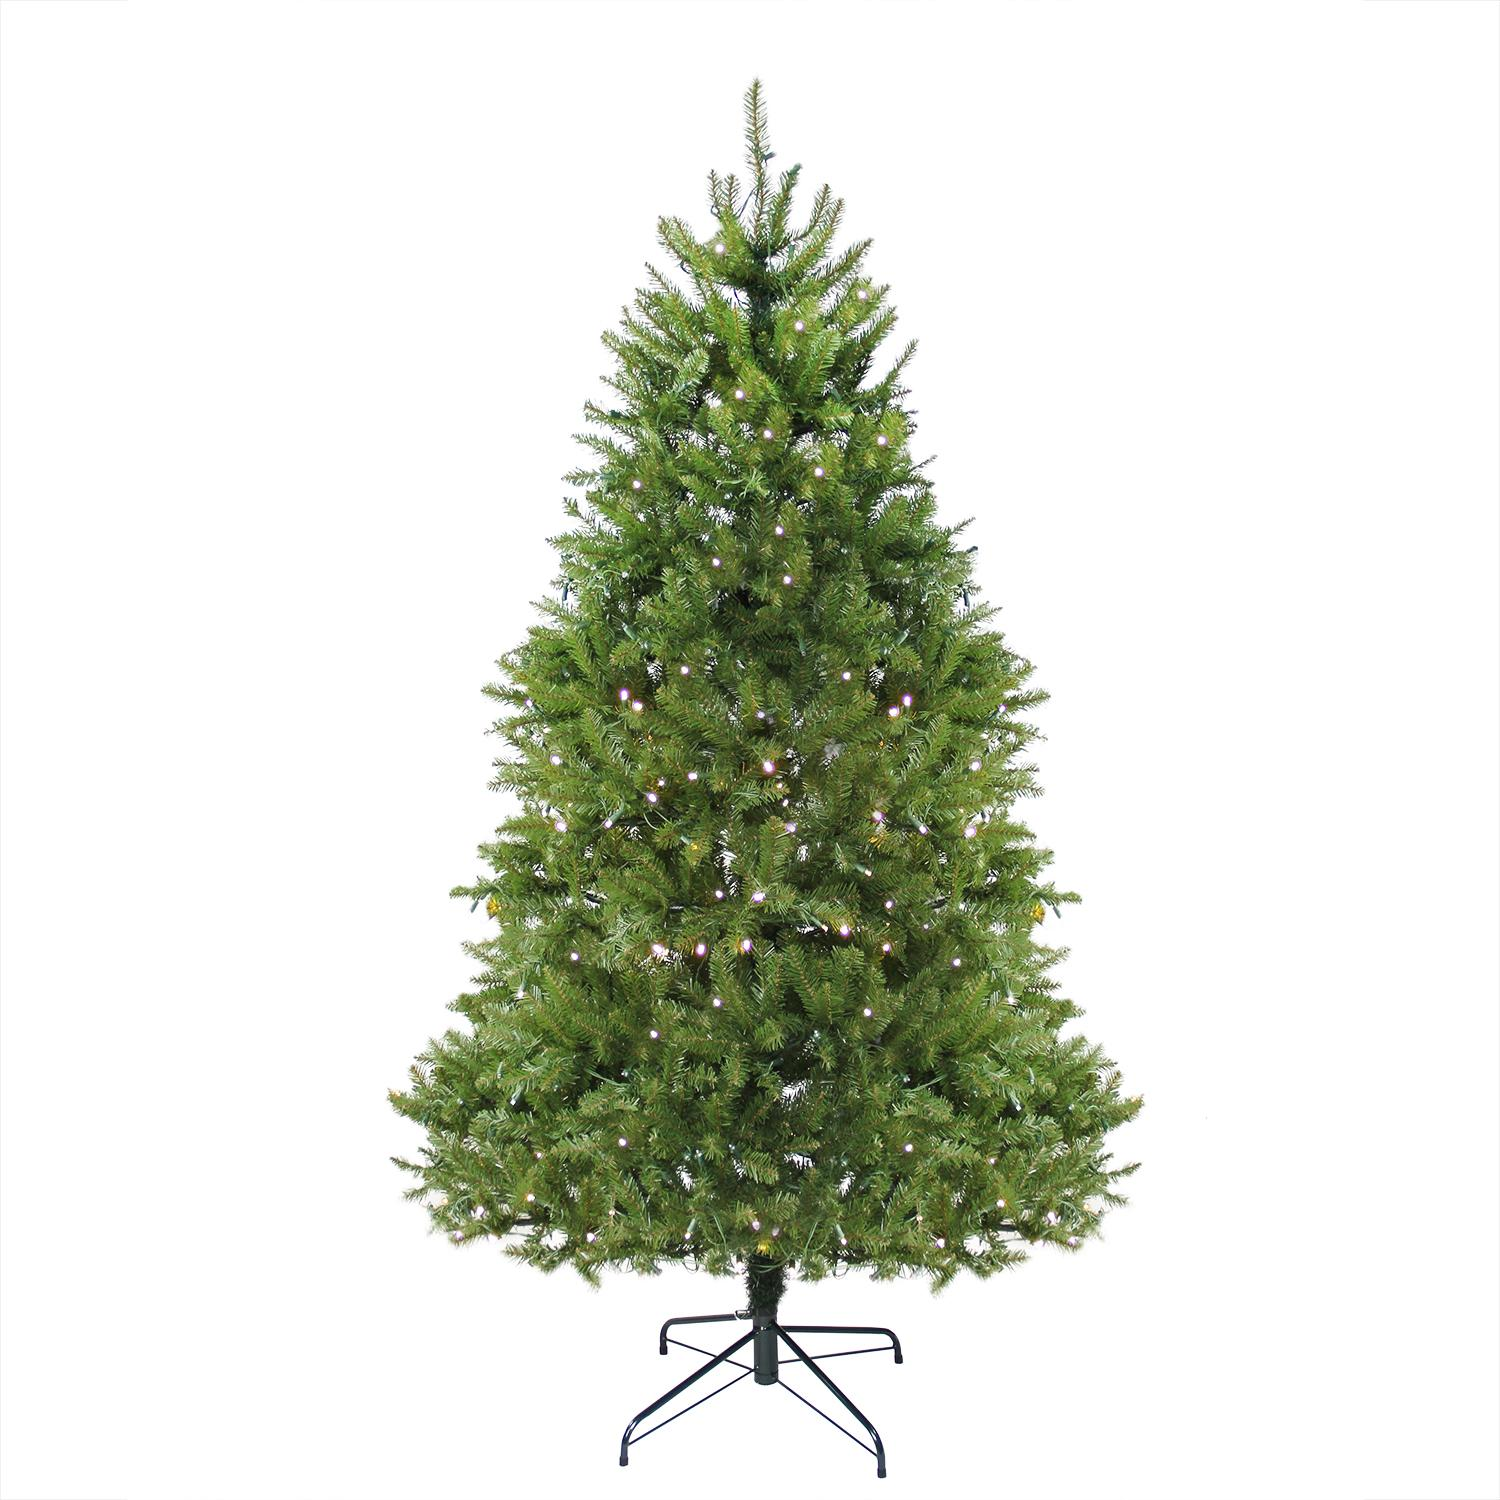 14' Pre-Lit Northern Pine Full Artificial Christmas Tree - Warm Clear LED Lights